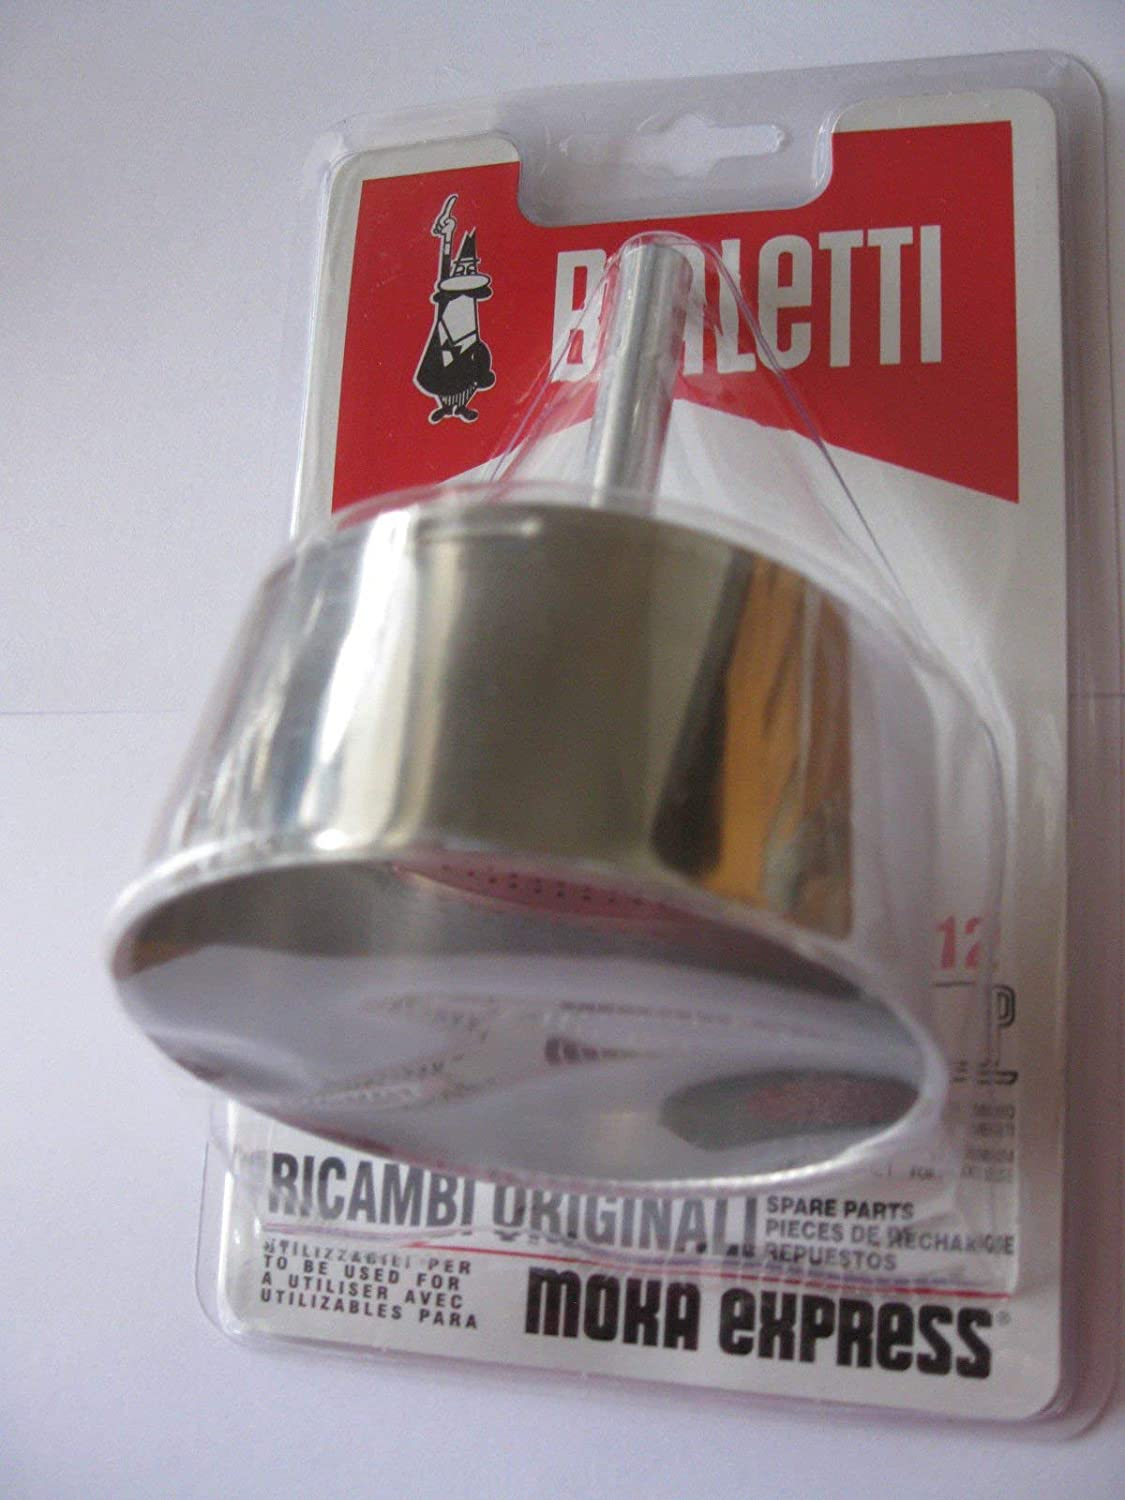 12 Cup Bialetti Spare Filter Funnel for Moka Express Coffee Maker